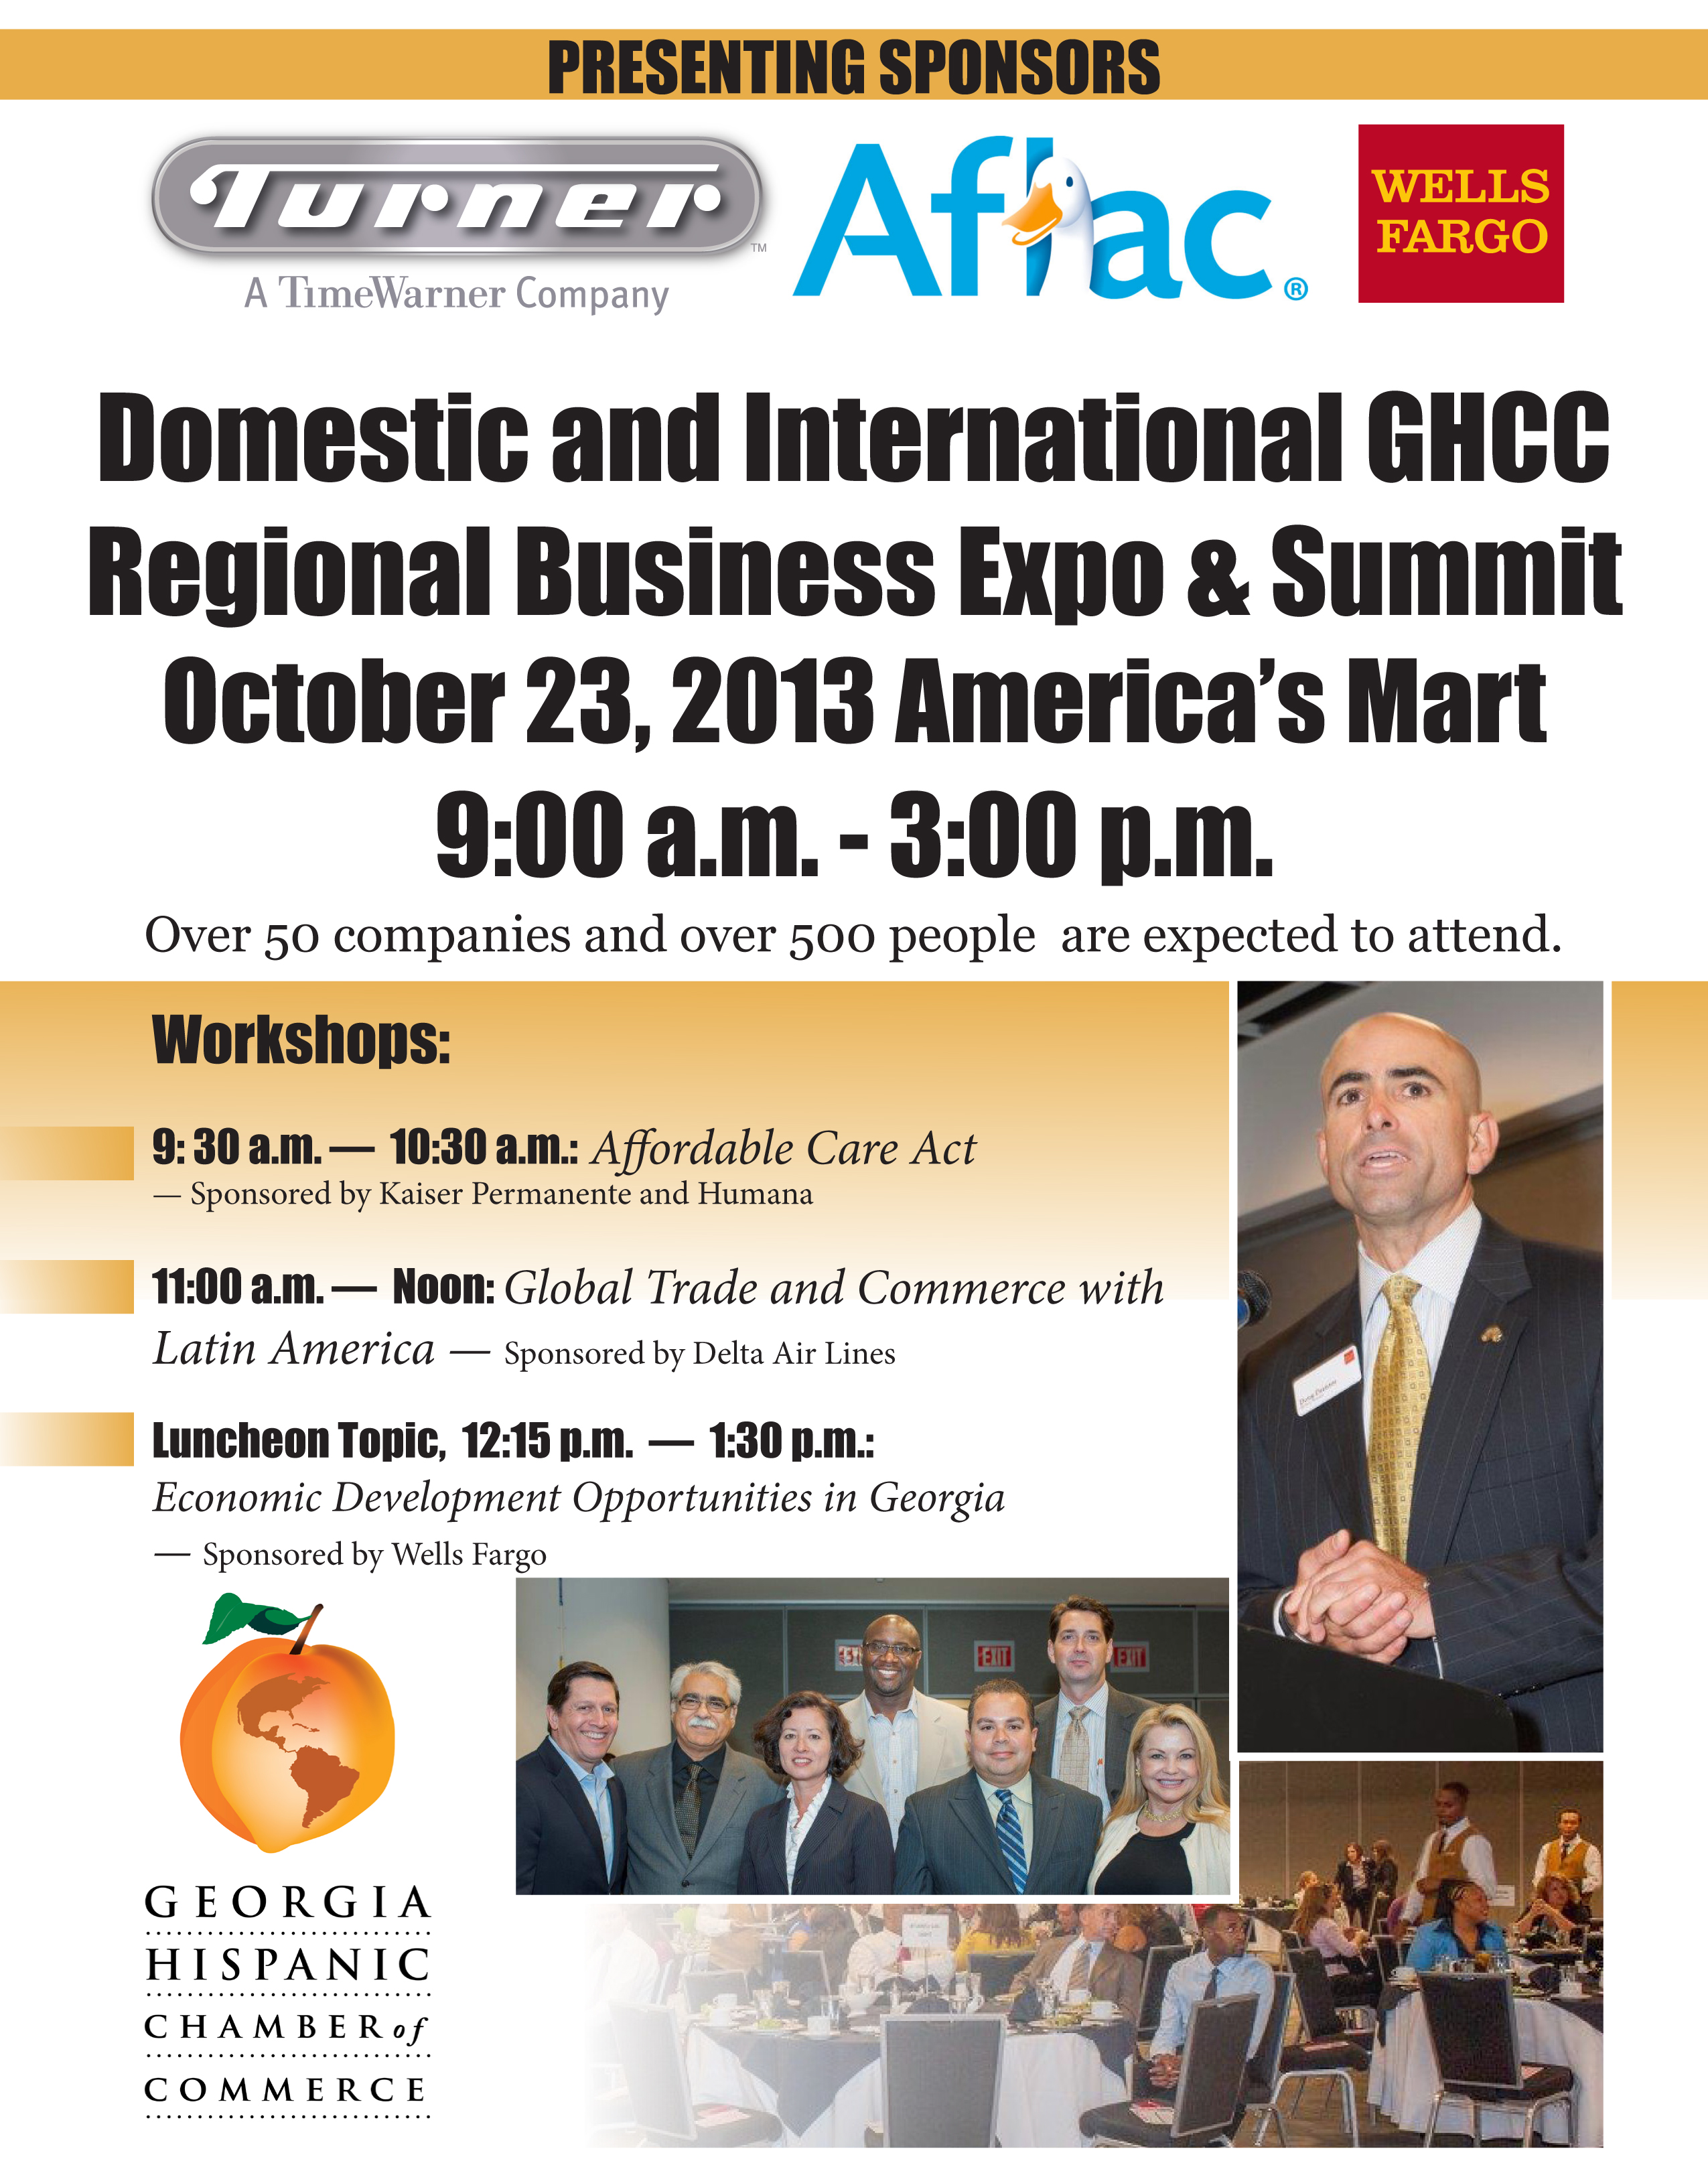 GHCC BUSINESS EXPO 2013 FLYER OCT 9 2013.indd